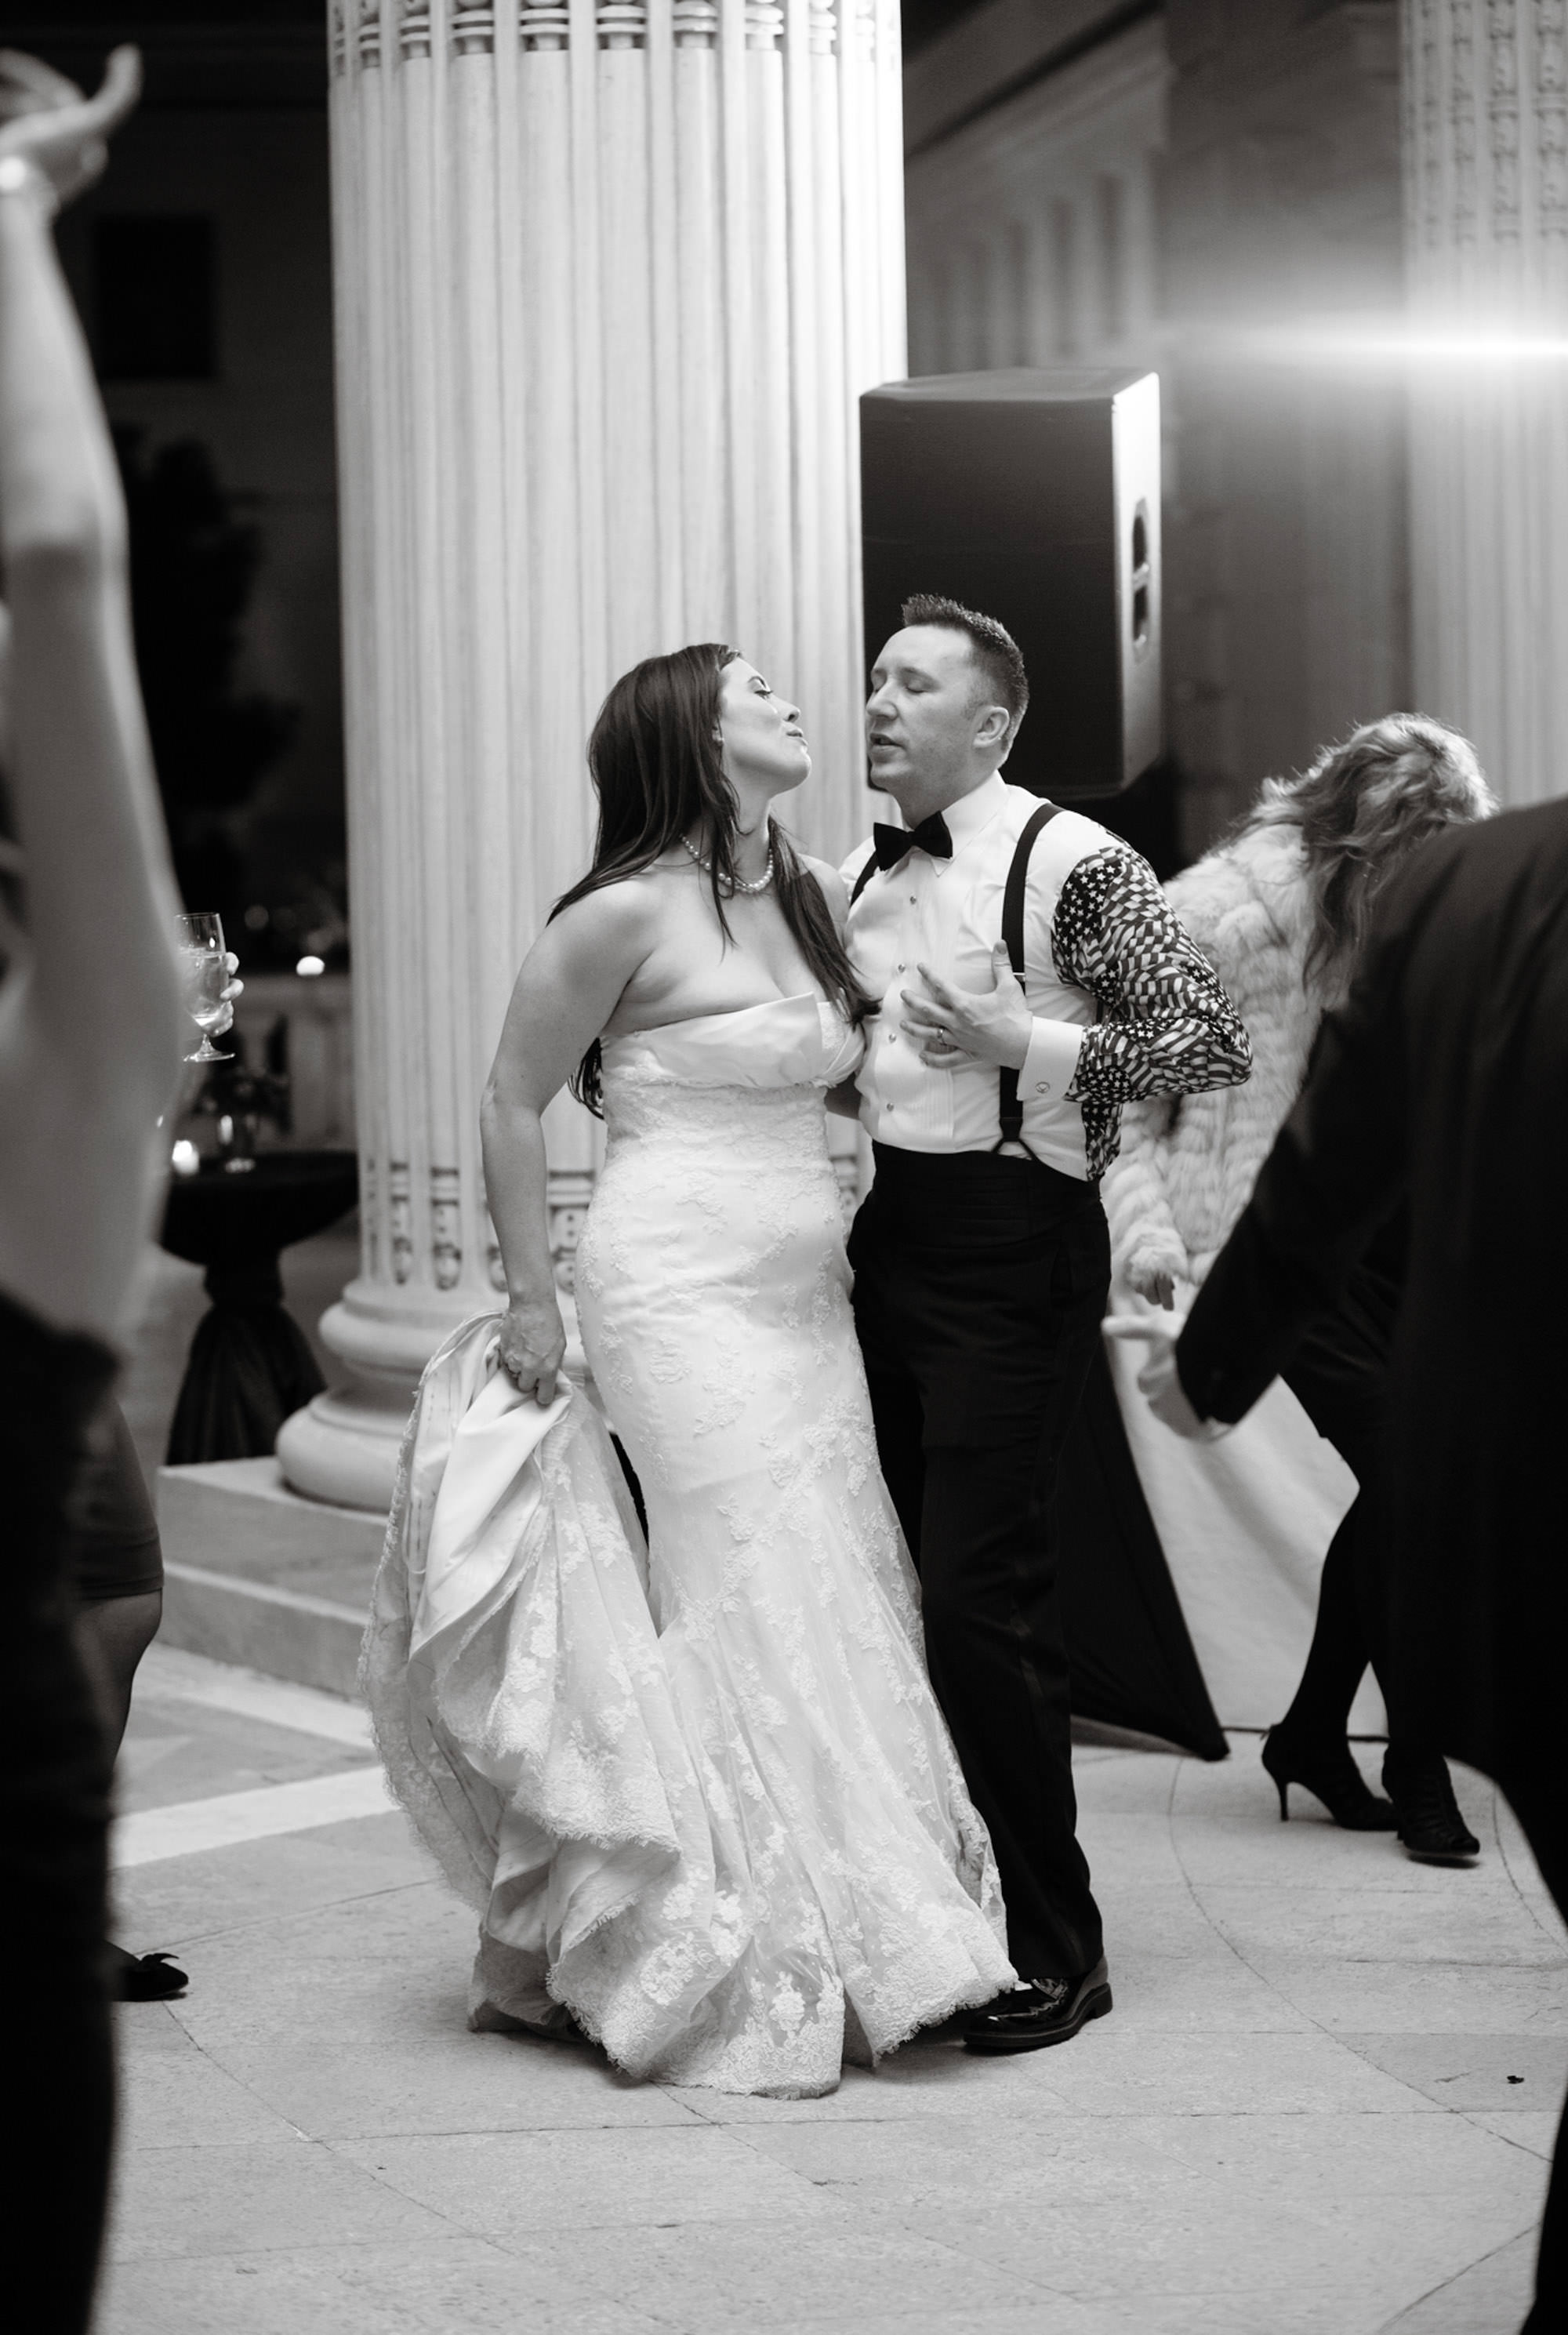 The couple dances during their DAR Memorial Continental Hall Wedding reception.